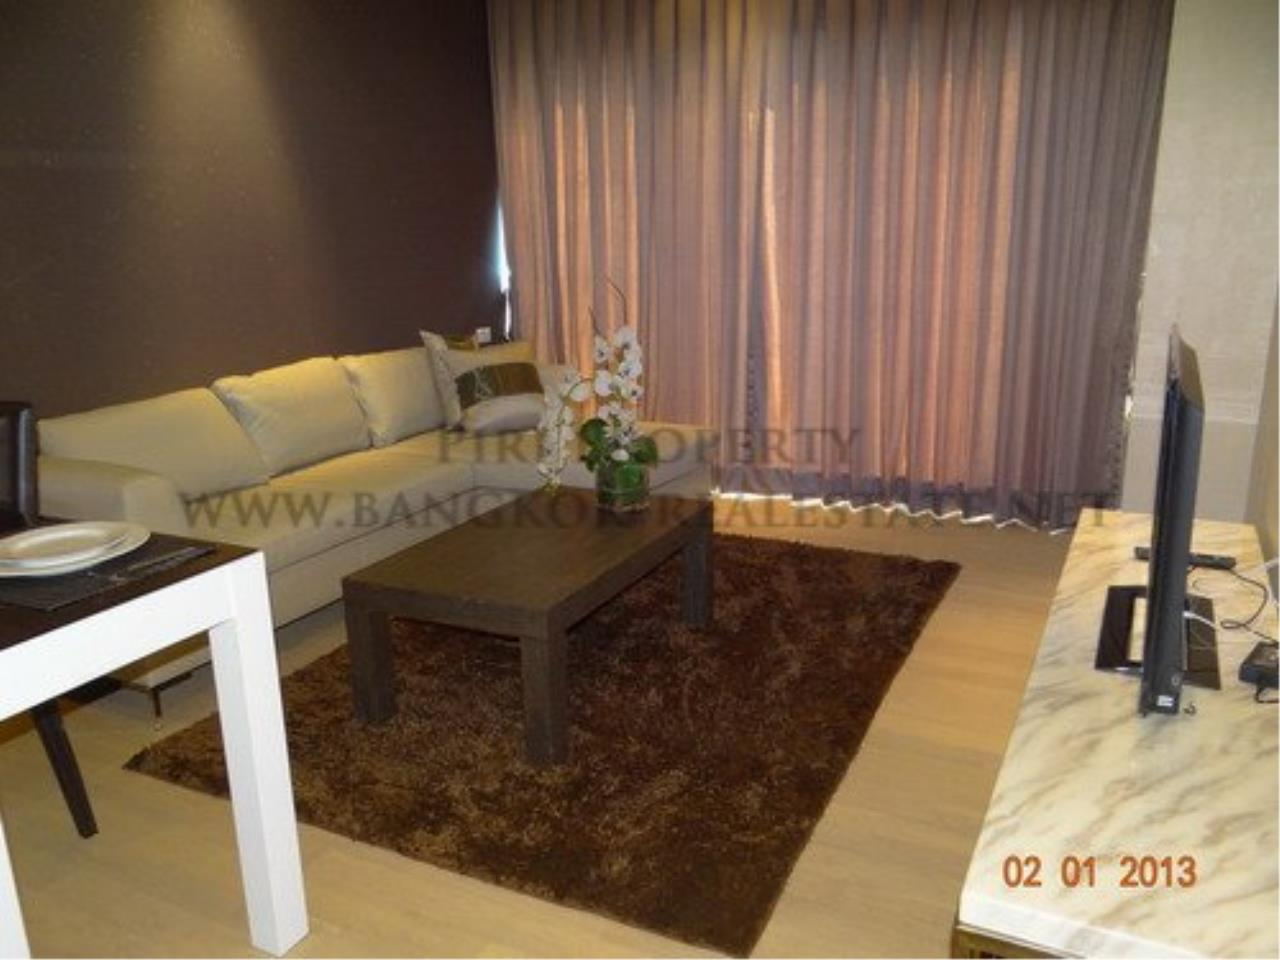 Piri Property Agency's 1 Bed - Noble Refine - Fully furnished for Rent near the Emporium 2